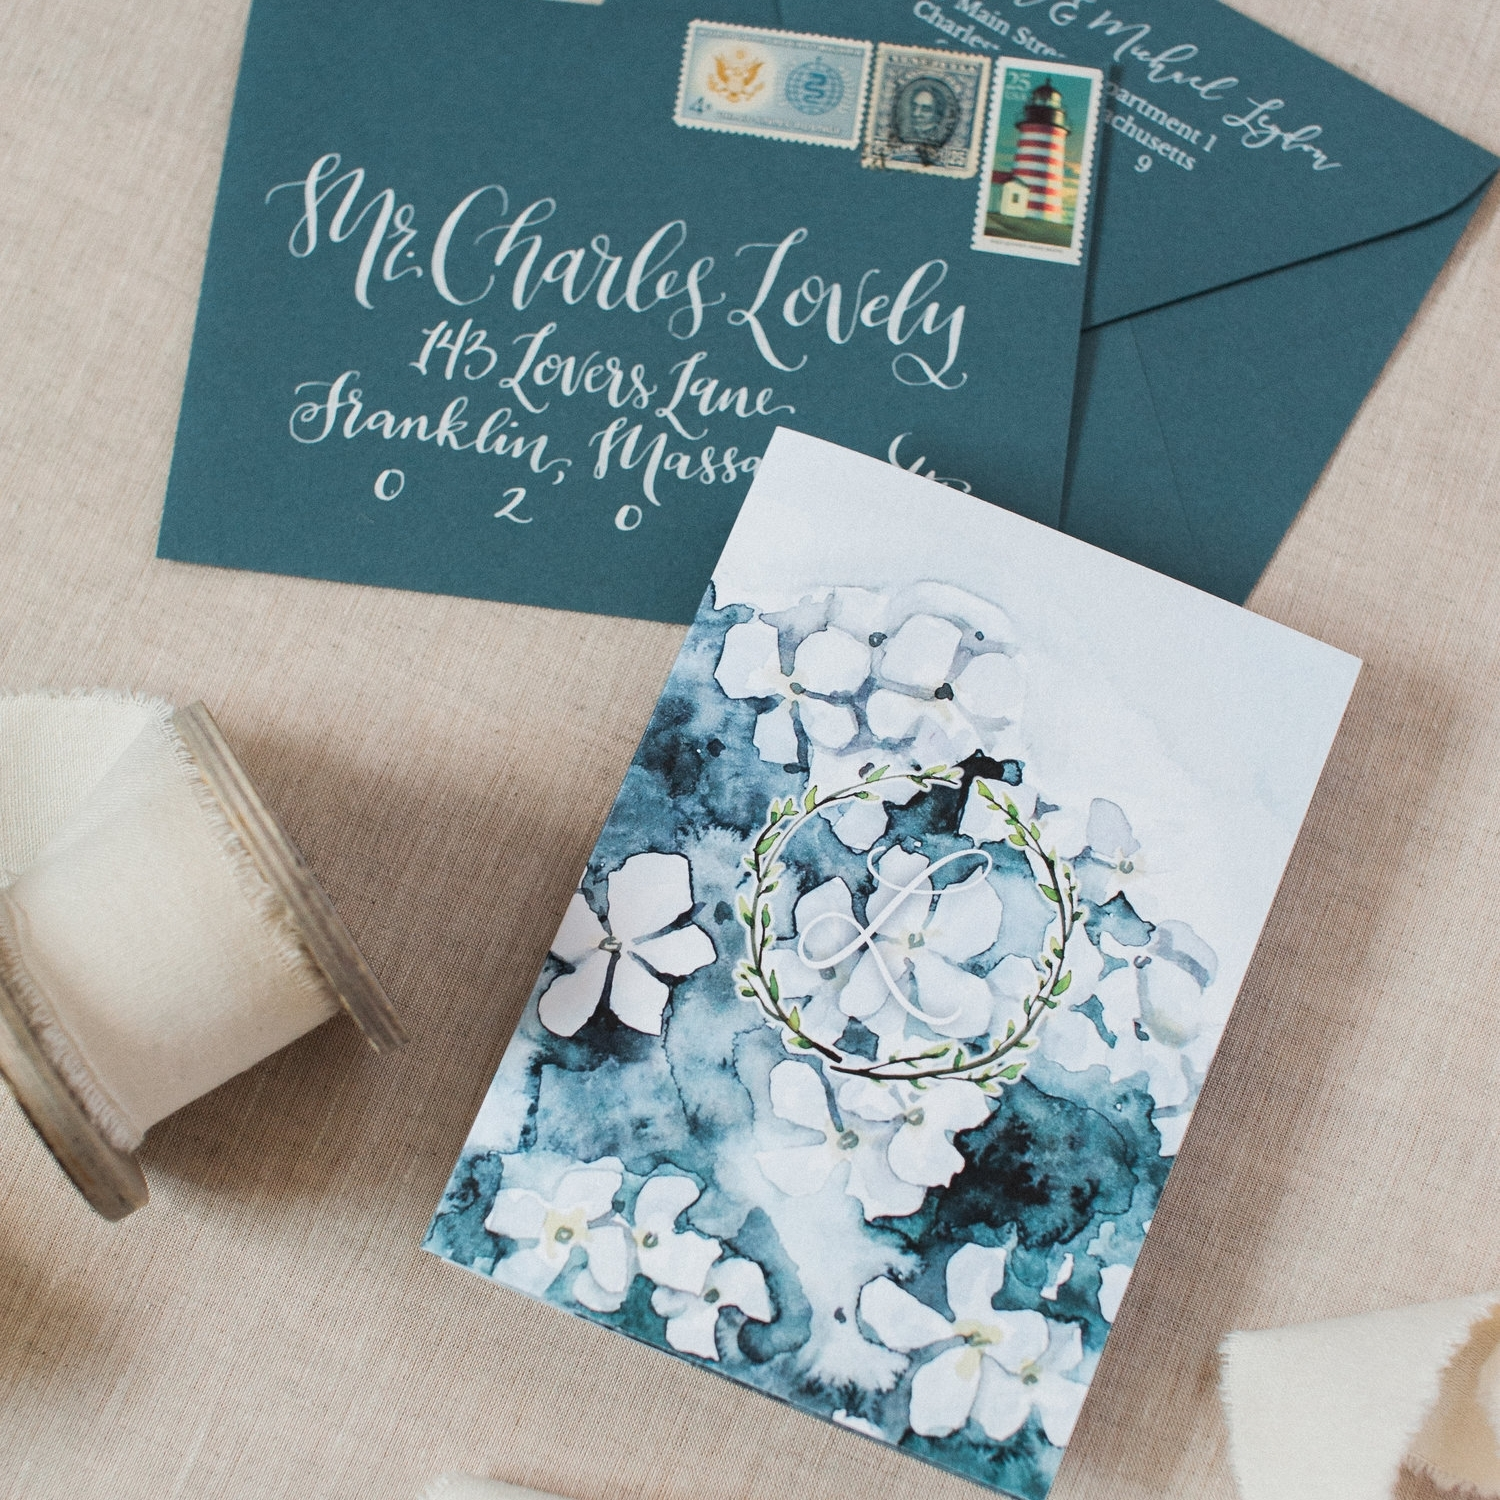 HYDRANGEA WATERCOLOR AND WYCHMERE HARBOR WEDDING INVITATIONS